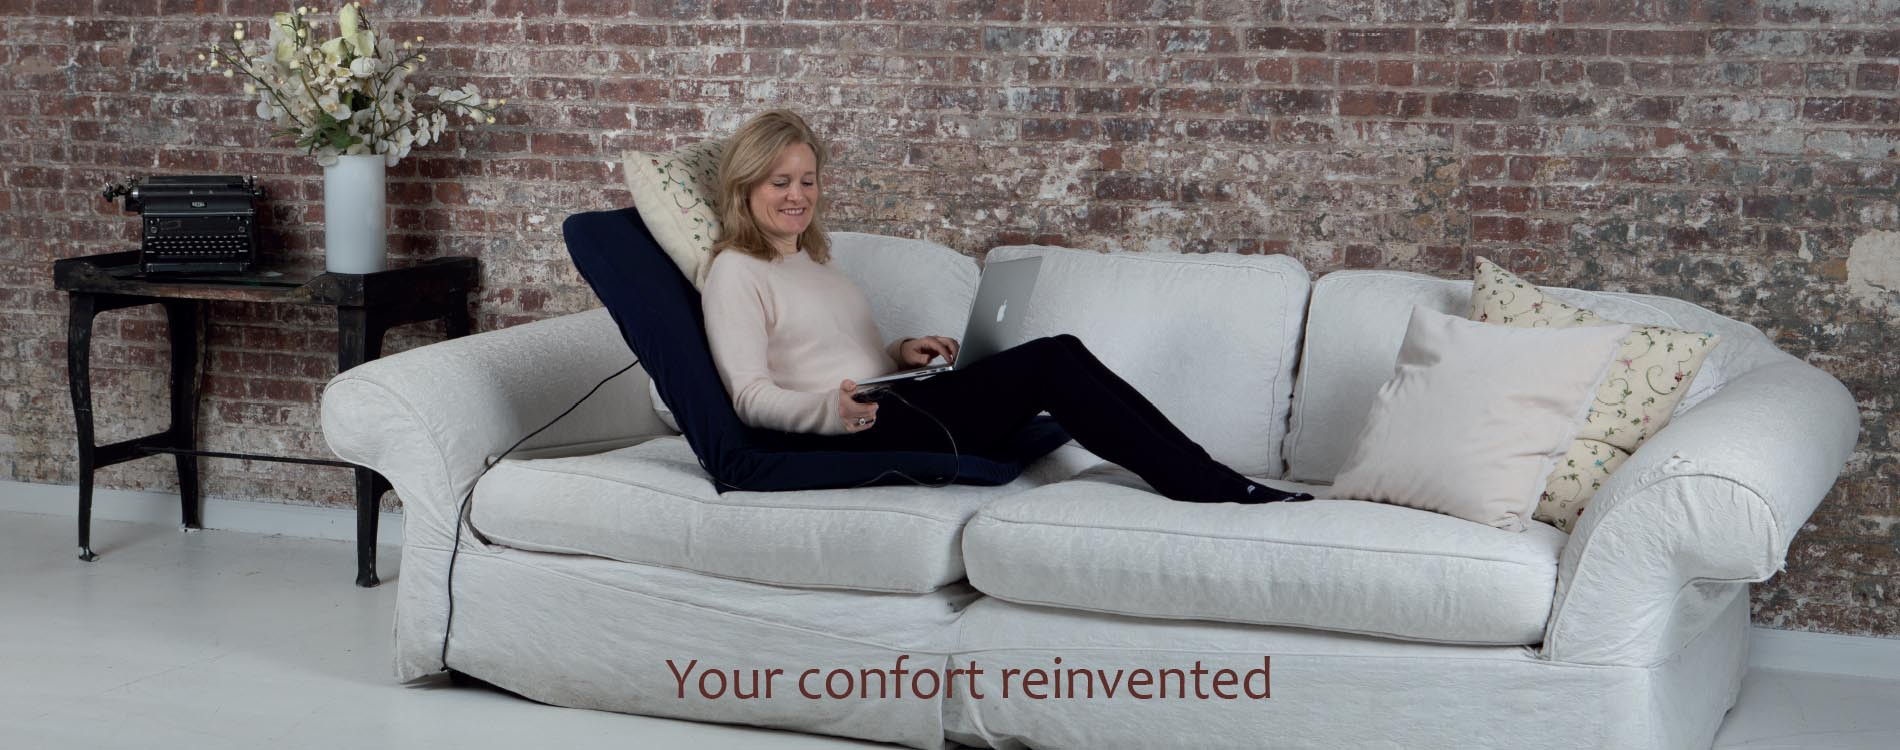 Your confort reinvented